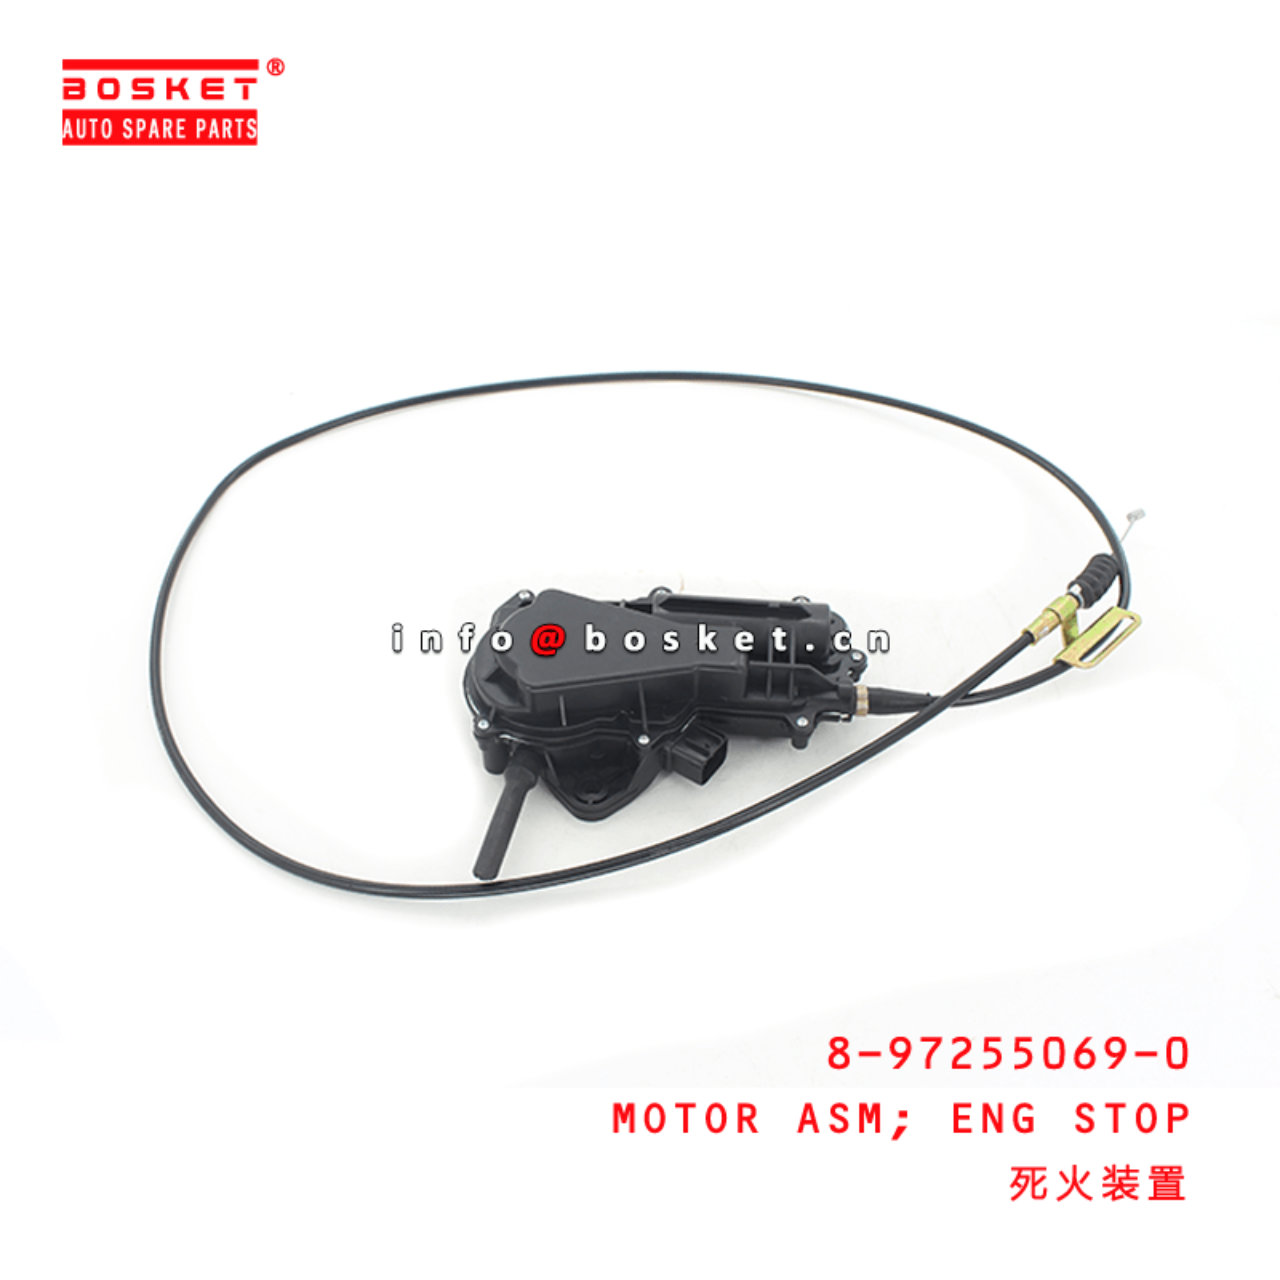 8-97255069-0 Engine Stop Motor Assembly 8972550690 Suitable for ISUZU 700P NPR75 NQR75